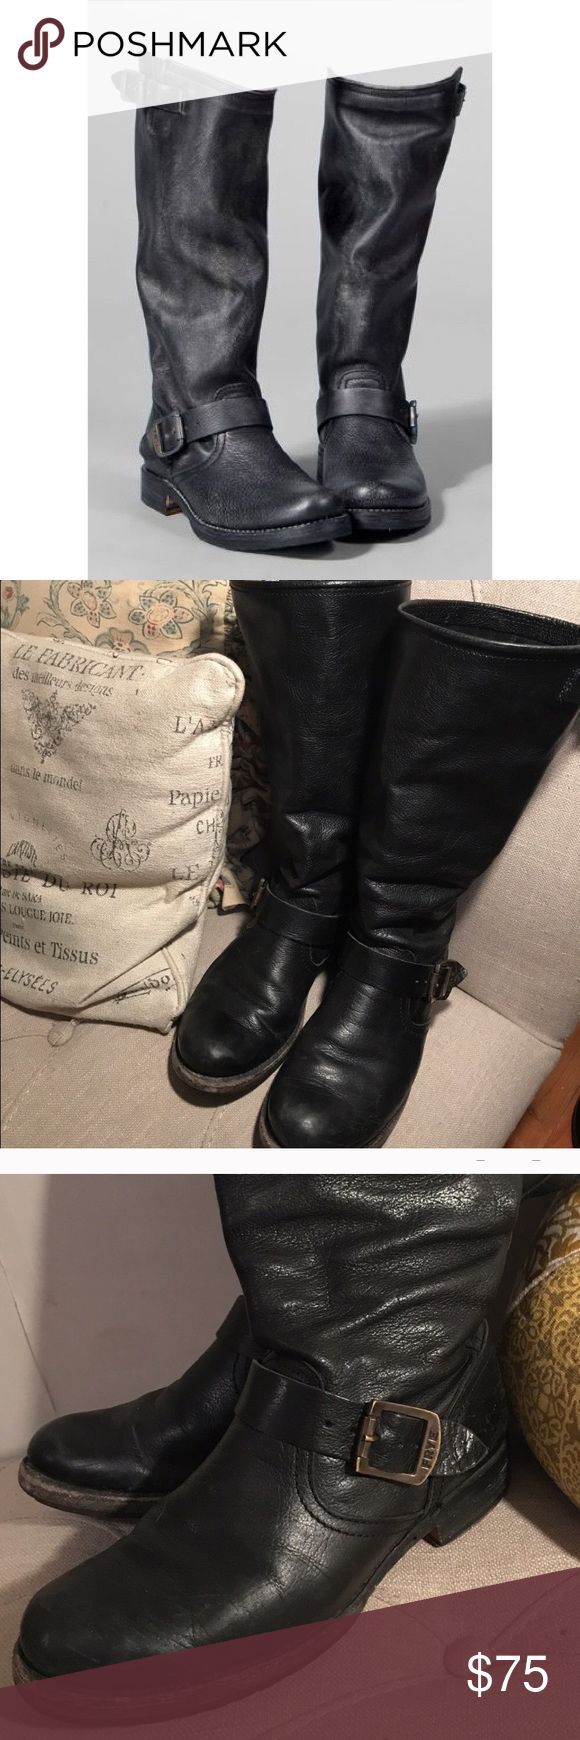 Frye Veronica Slouch Awesome boots! They are in used condition but still have lots of life, these boots last forever. There is scuffing and part of the inner boot lining has come up, shown in pictures. Doesn't bother me and I'm sort of picky about that type of thing. Frye Shoes